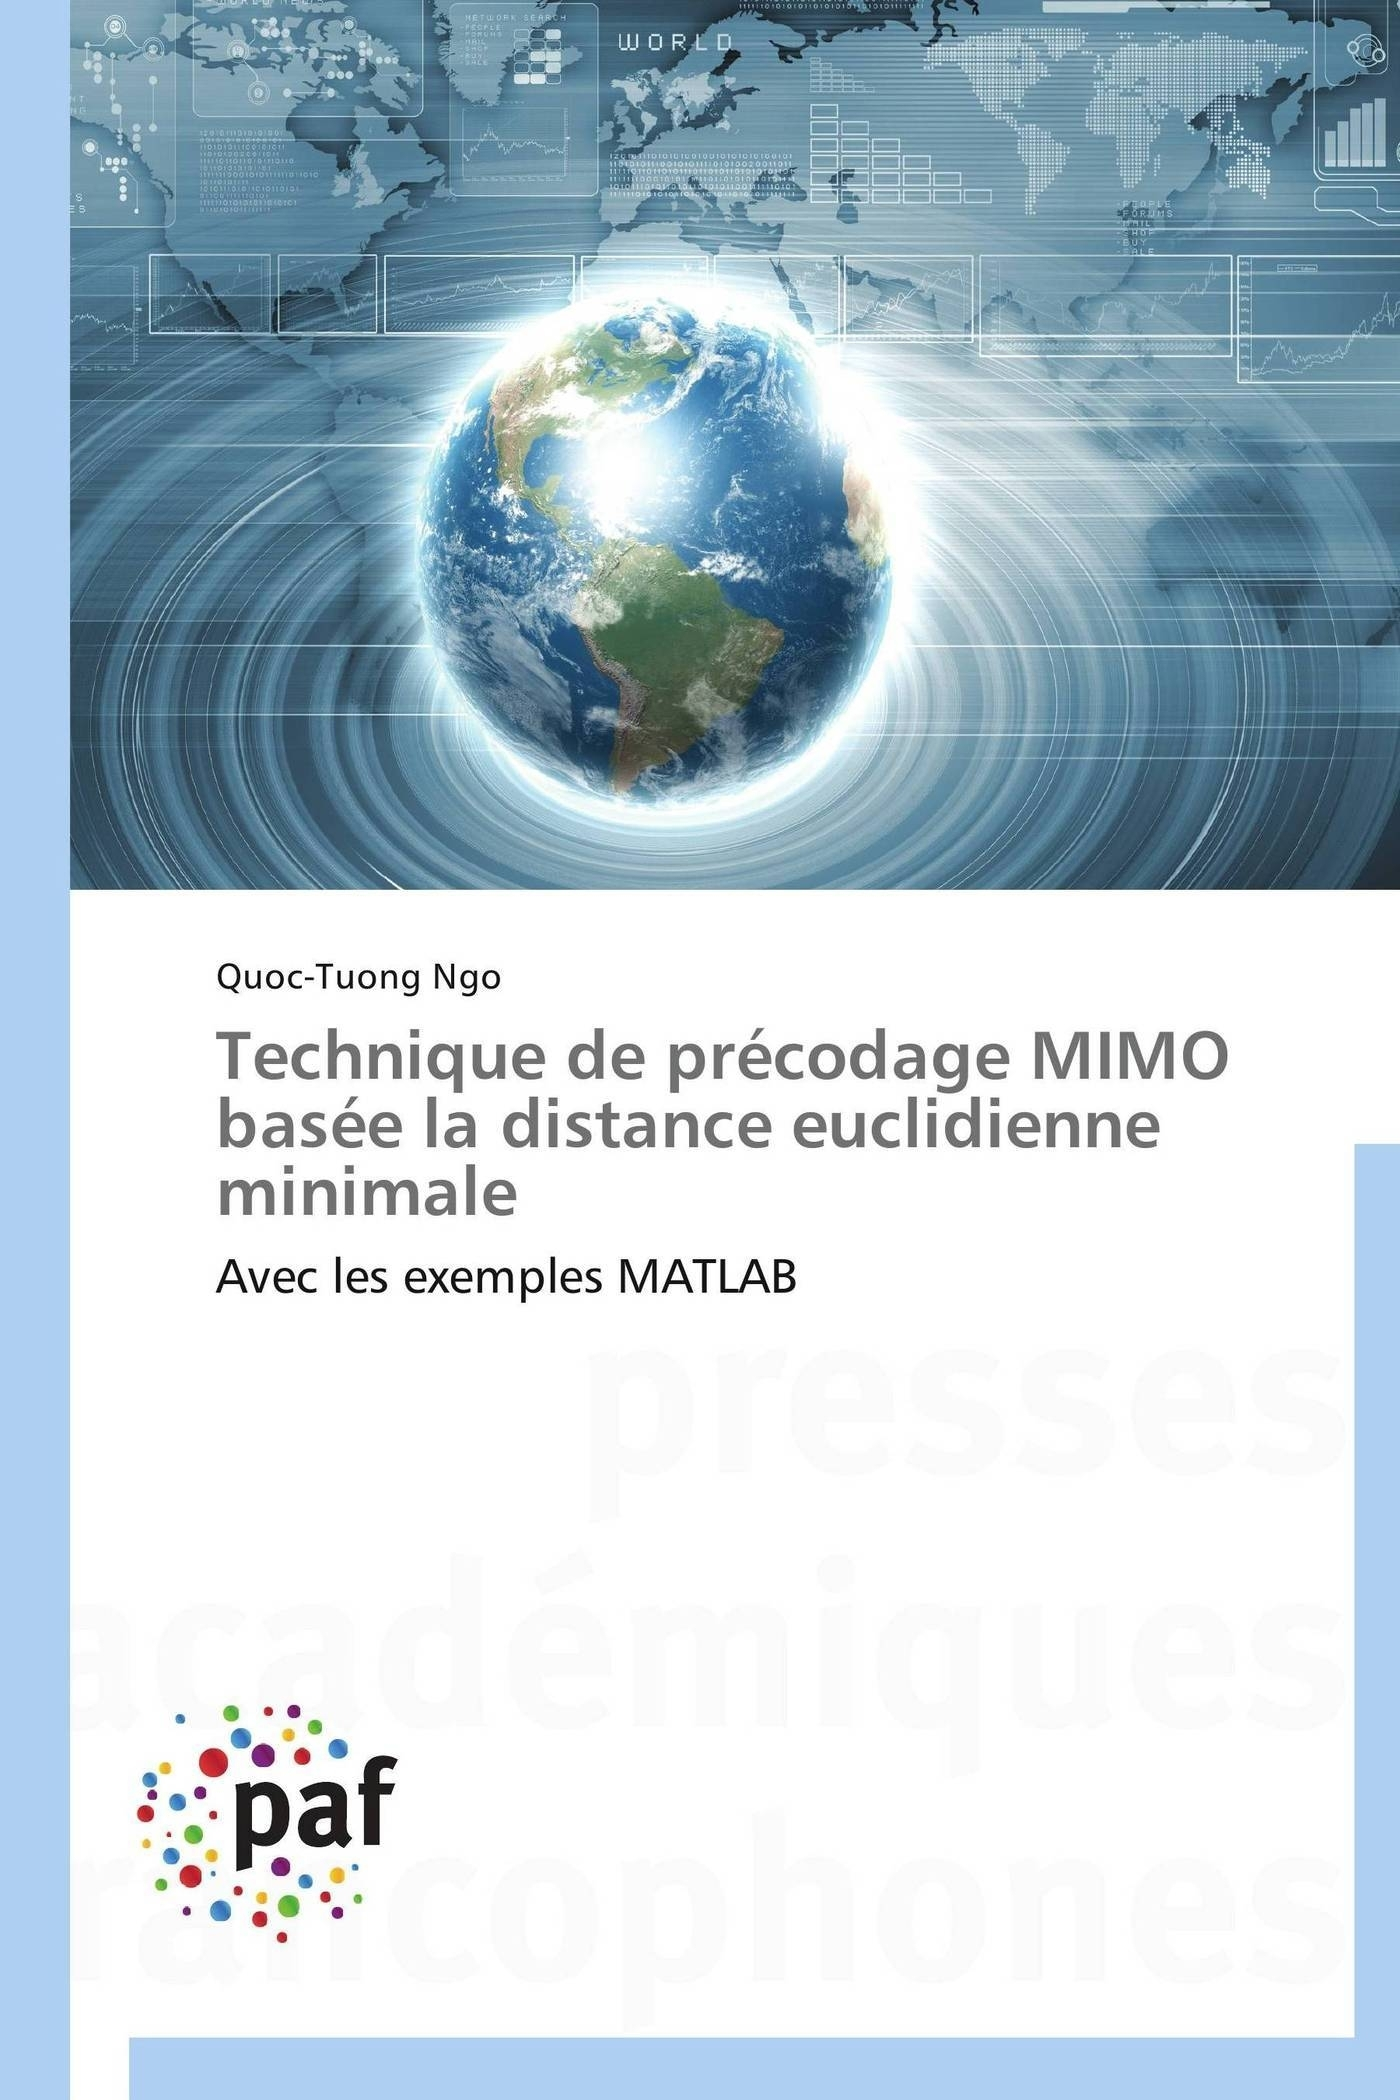 TECHNIQUE DE PRECODAGE MIMO BASEE LA DISTANCE EUCLIDIENNE MINIMALE